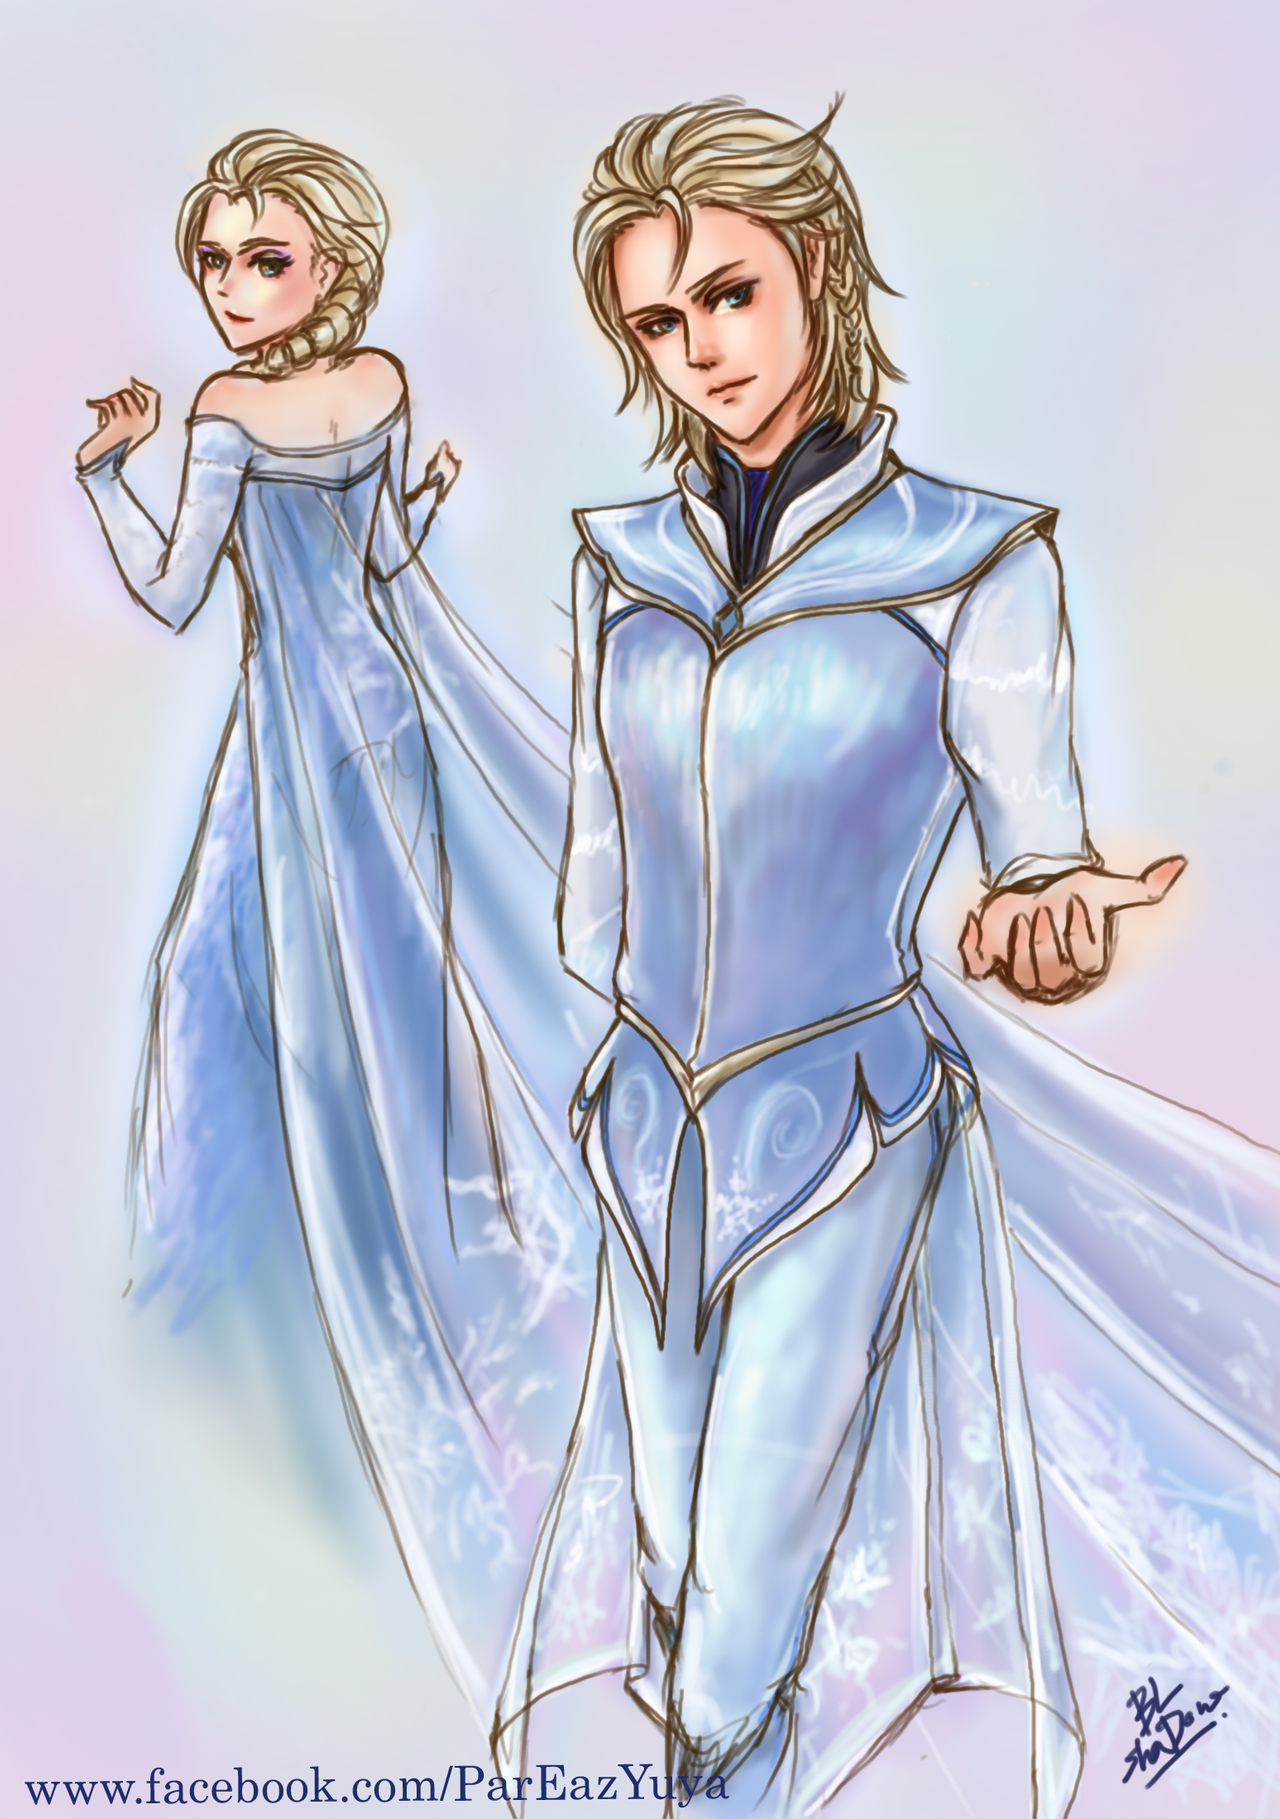 Elsa [FROZEN] Male version by palitapare